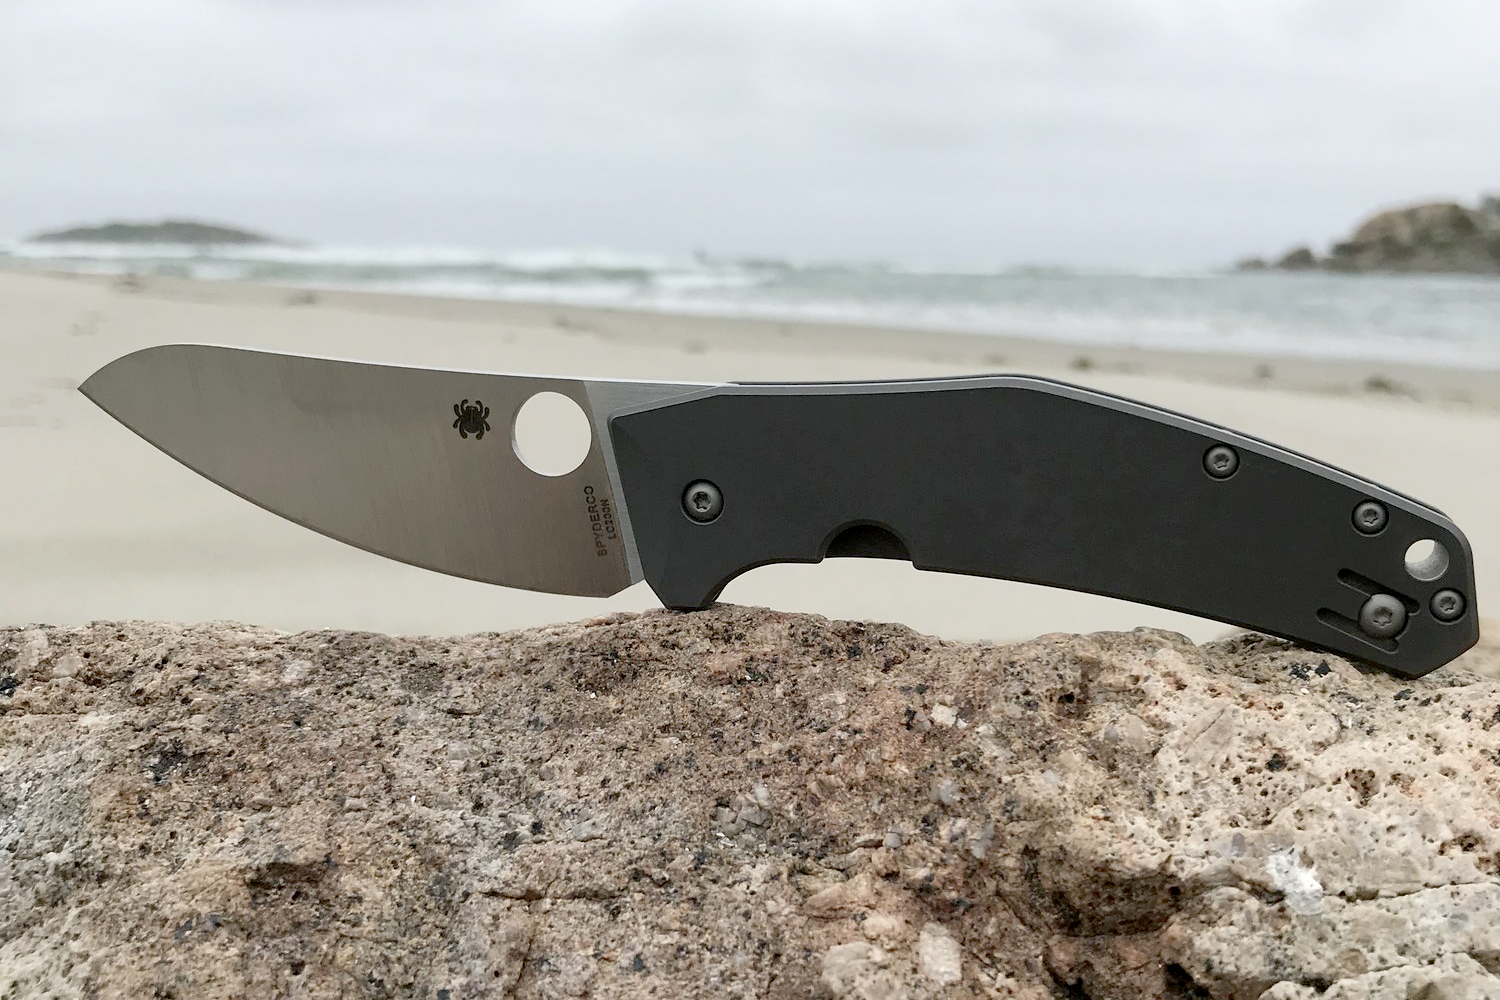 Spyderco Spydiechef Review: The Best Knife Of 2019 | GearJunkie